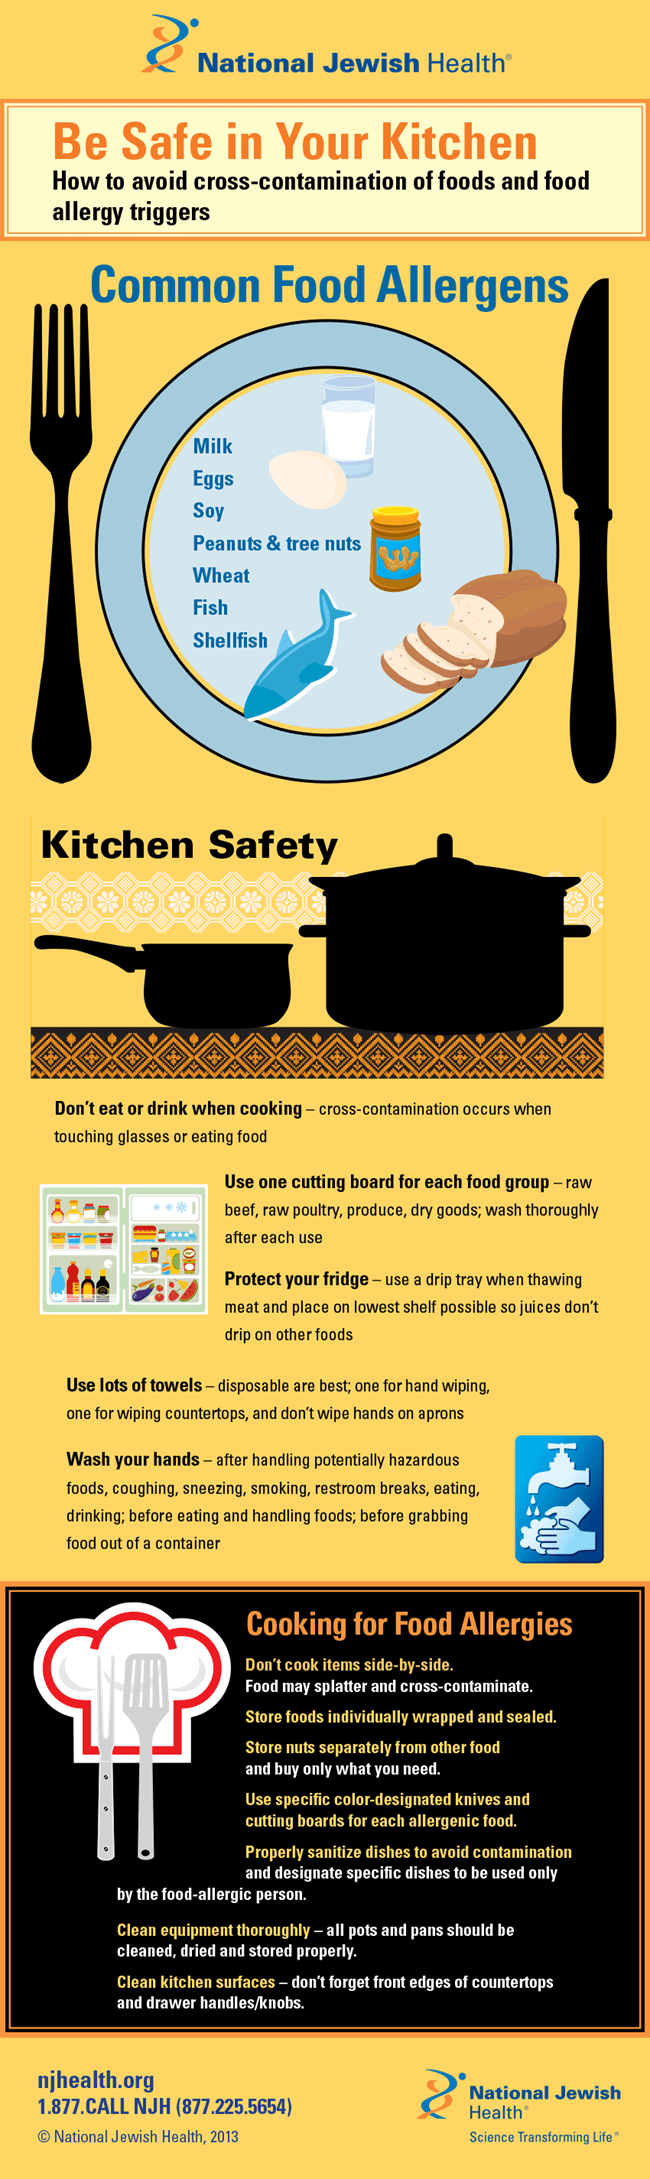 Be Safe in Your Kitchen: How to Avoid Cross-Contamination of Food and Food Allergy Triggers Infographic